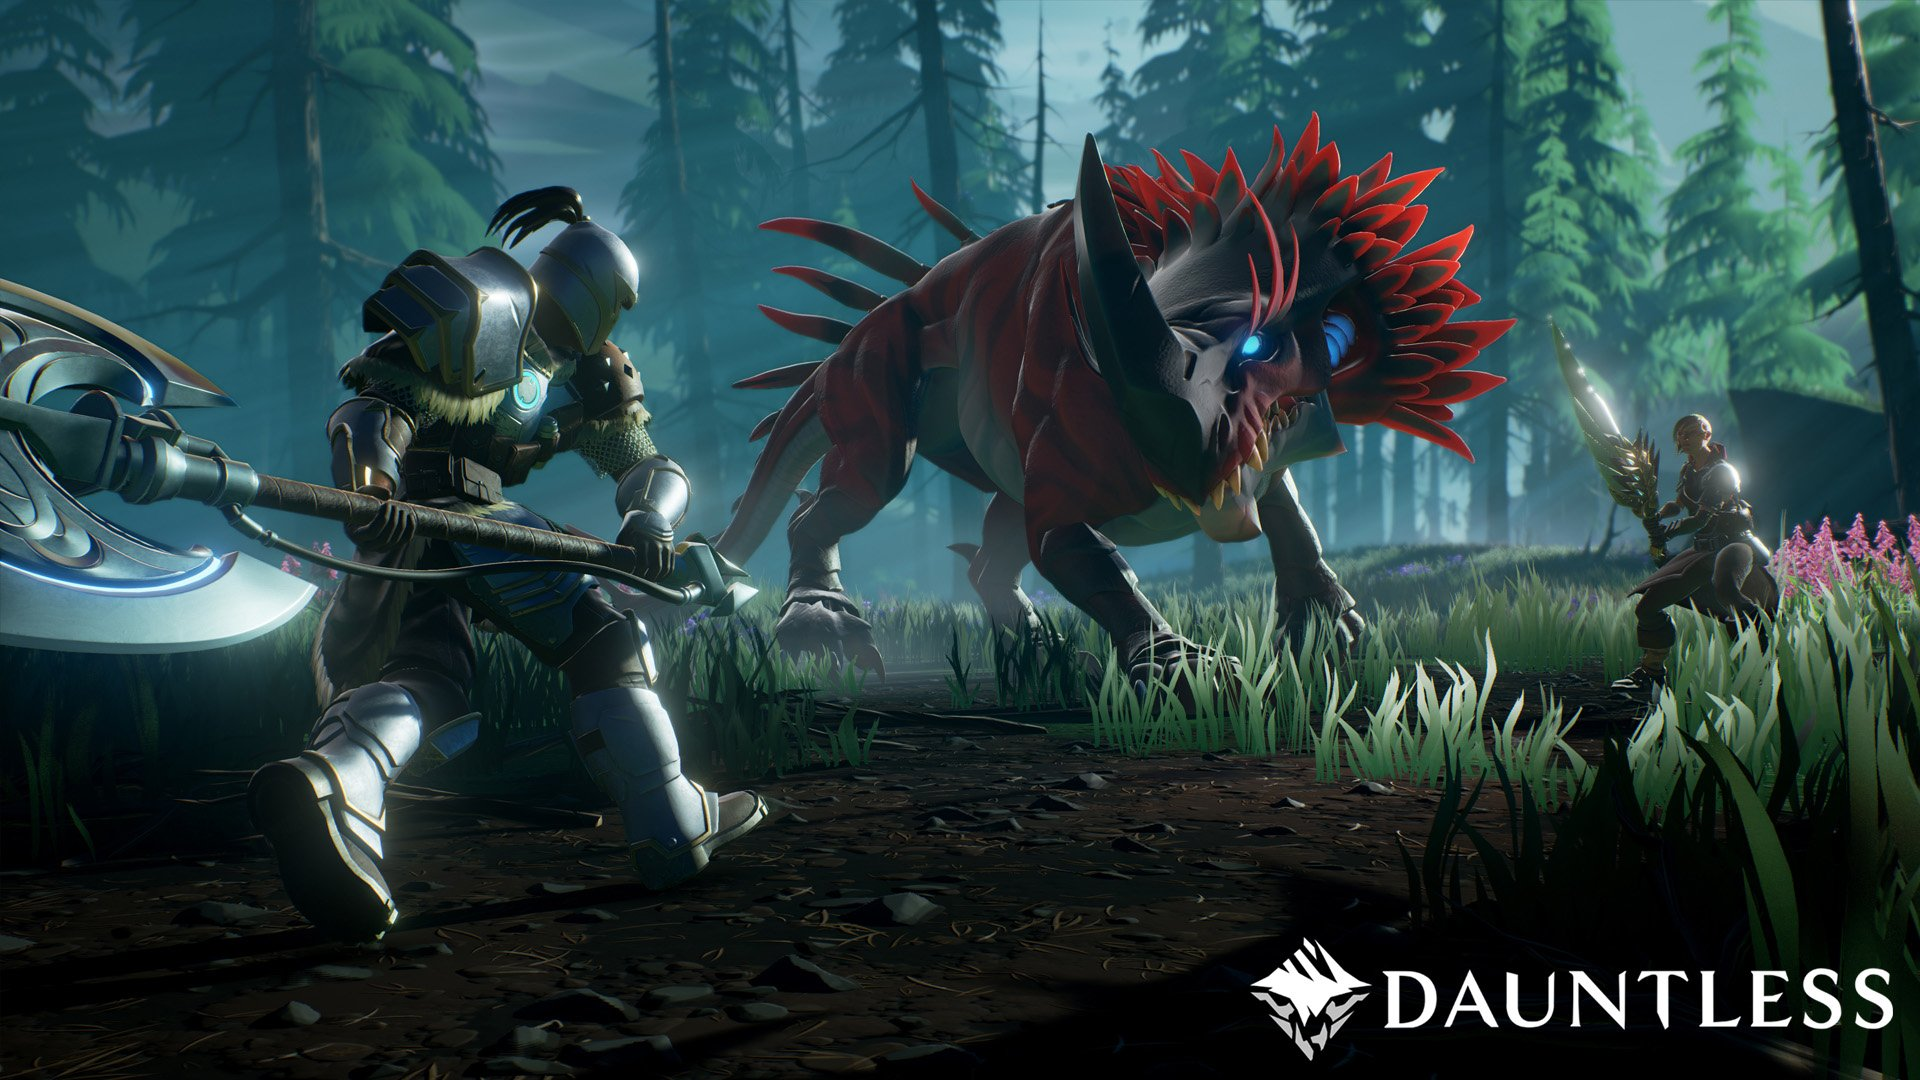 Dauntless At PAX South & The Community Of The Hunt